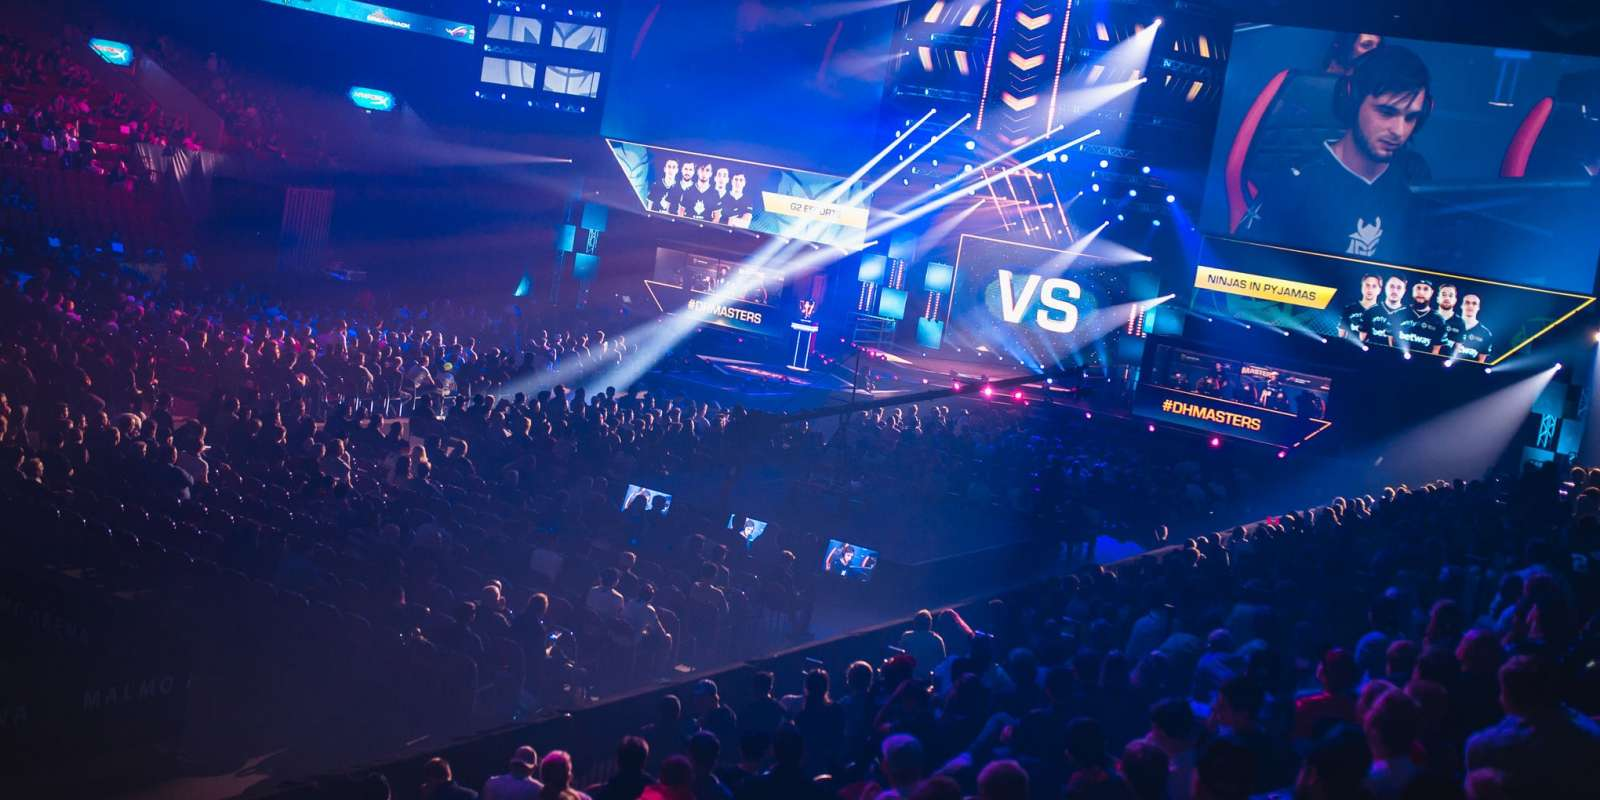 Photos of the event at Dreamhack Masters in Malmo, Sweden